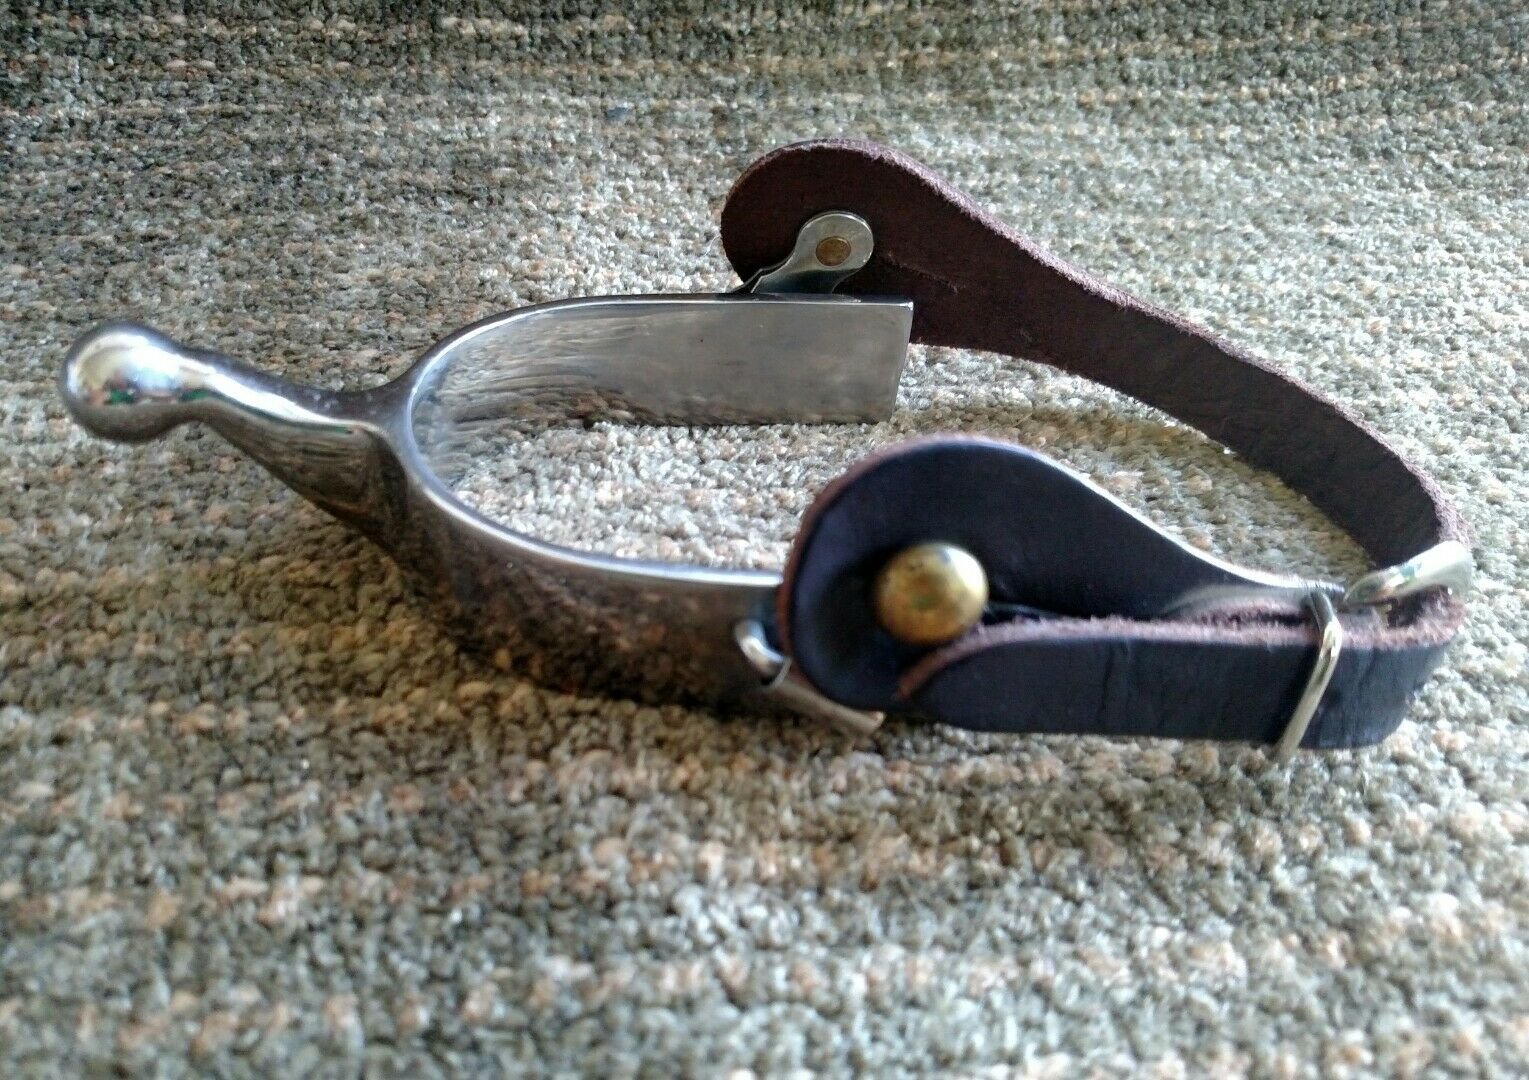 Metalab stainless steel Humane blunt-tipped spur, Pelle strap & brass rivets